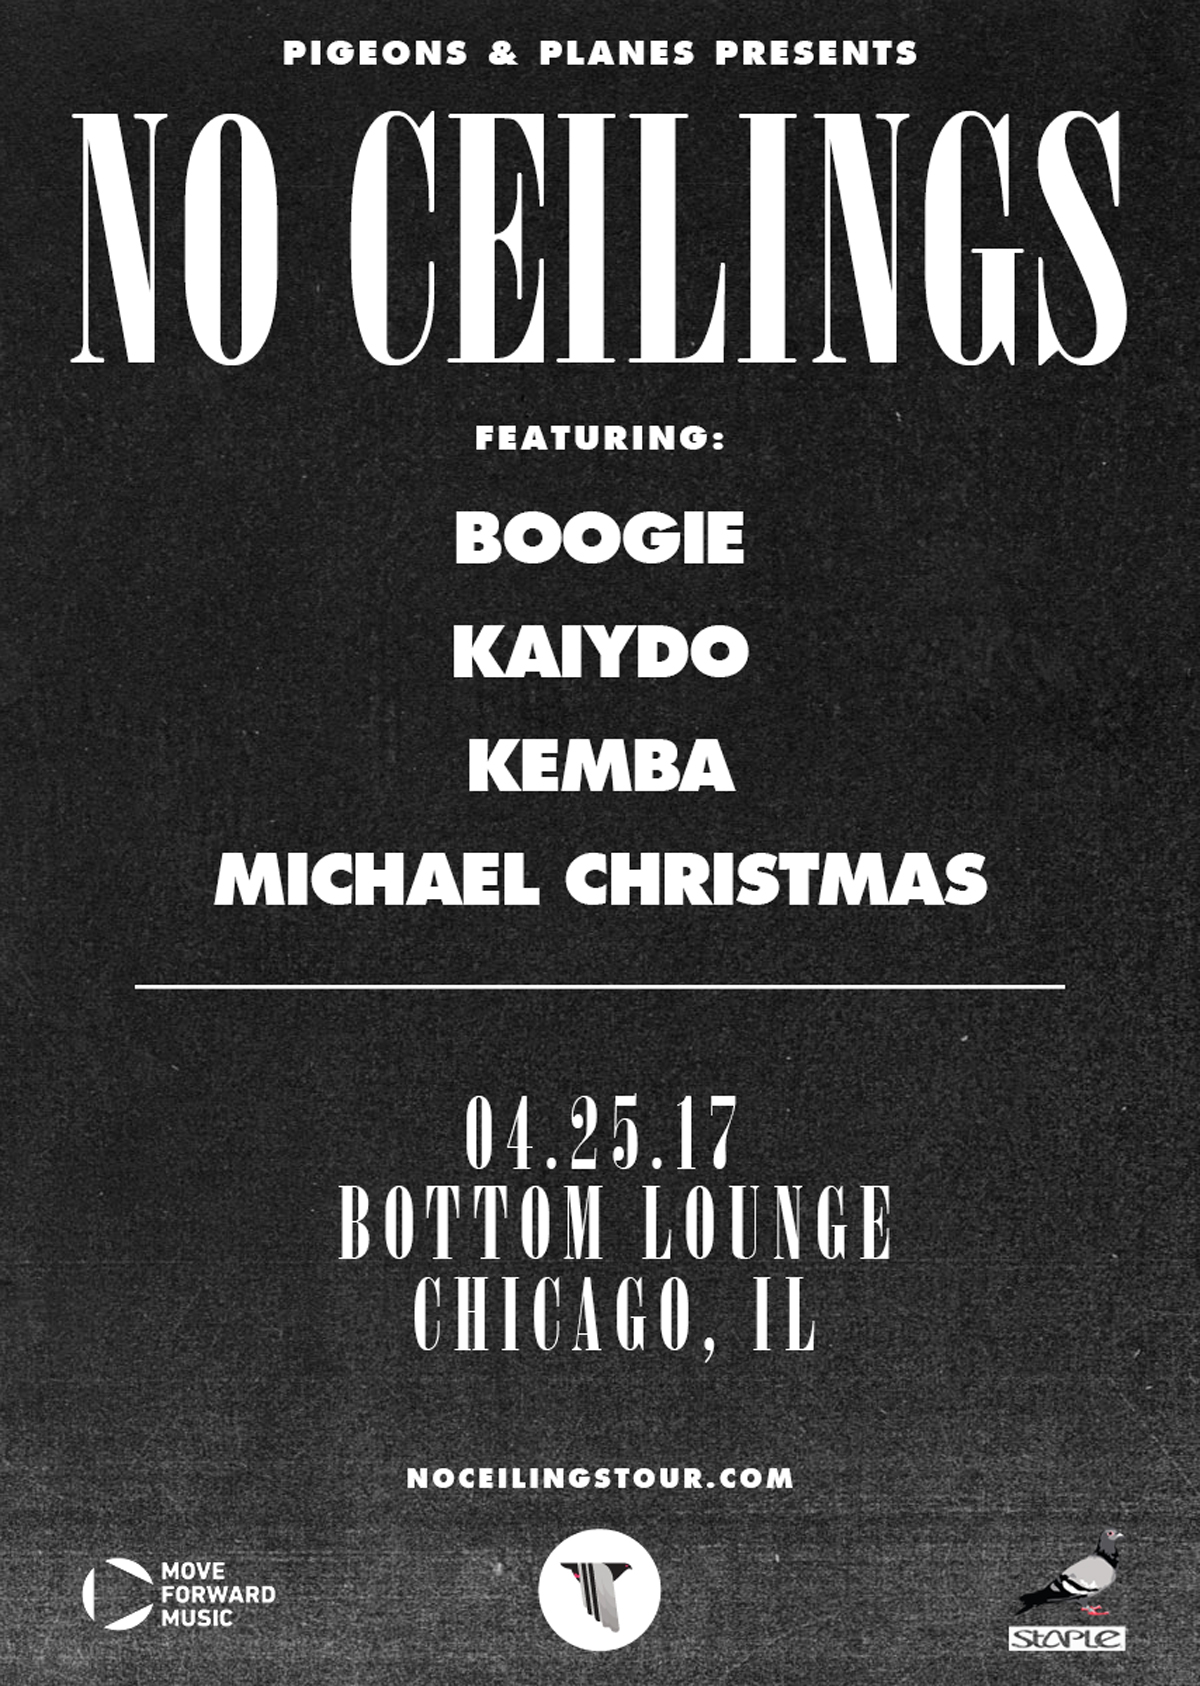 Pigeons & Planes Presents: NO CEILINGS featuring Boogie, Kaiydo, Kemba, and Michael Christmas